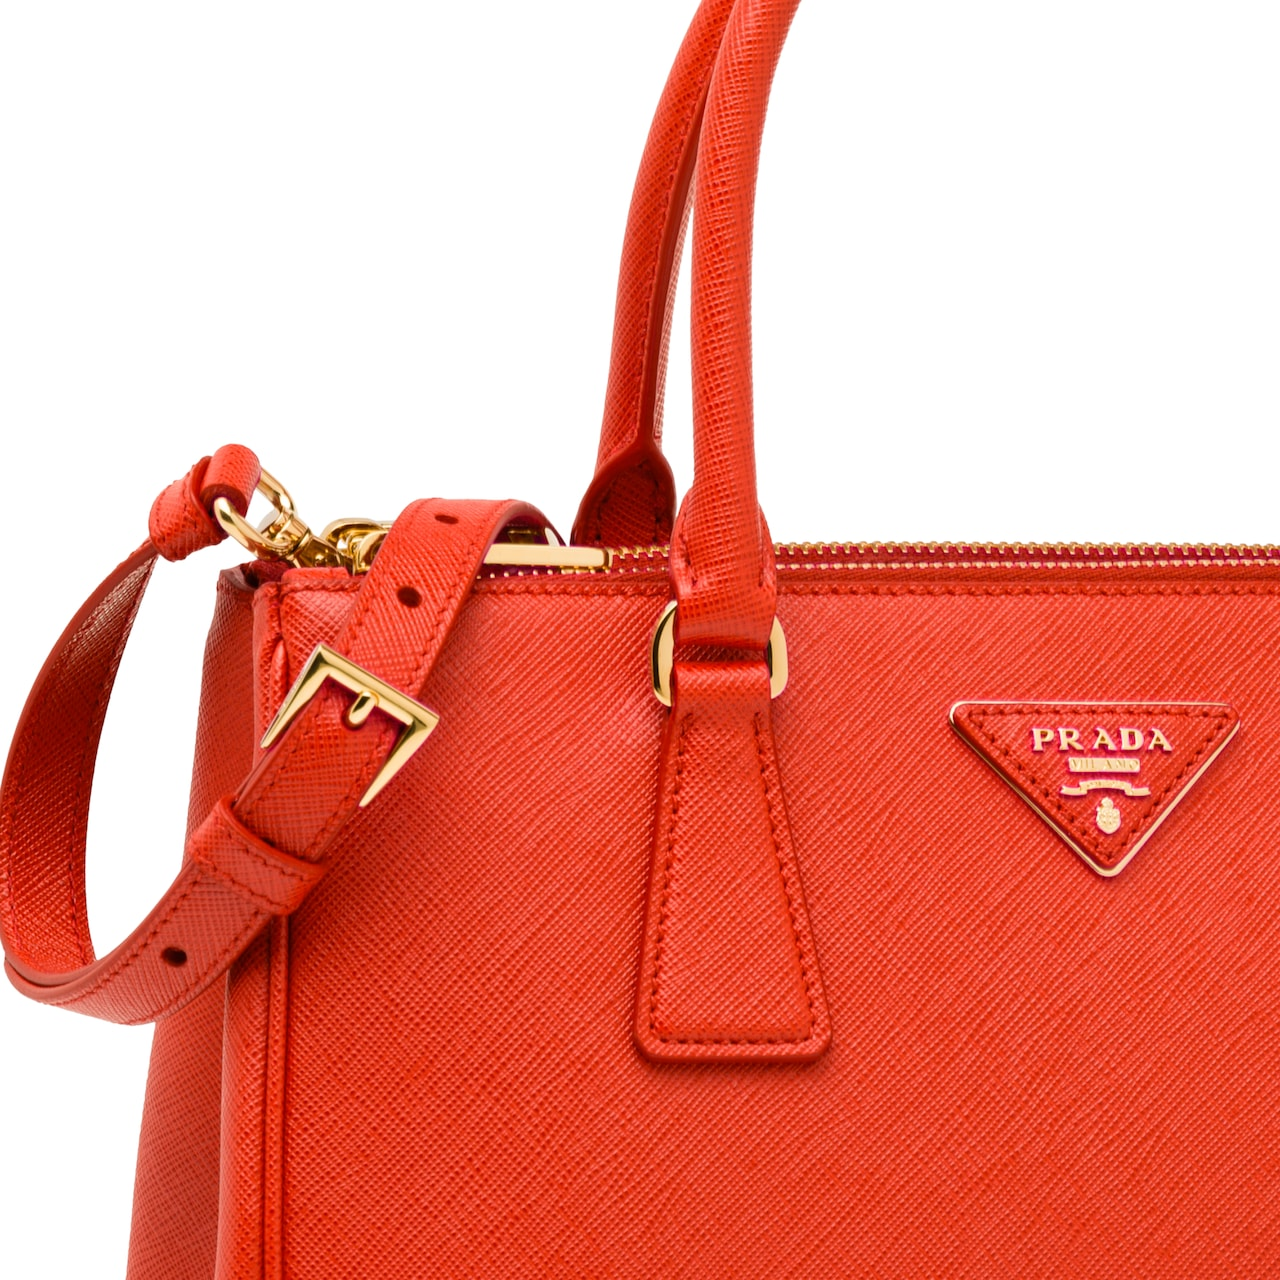 Prada Galleria Small Saffiano Leather Bag